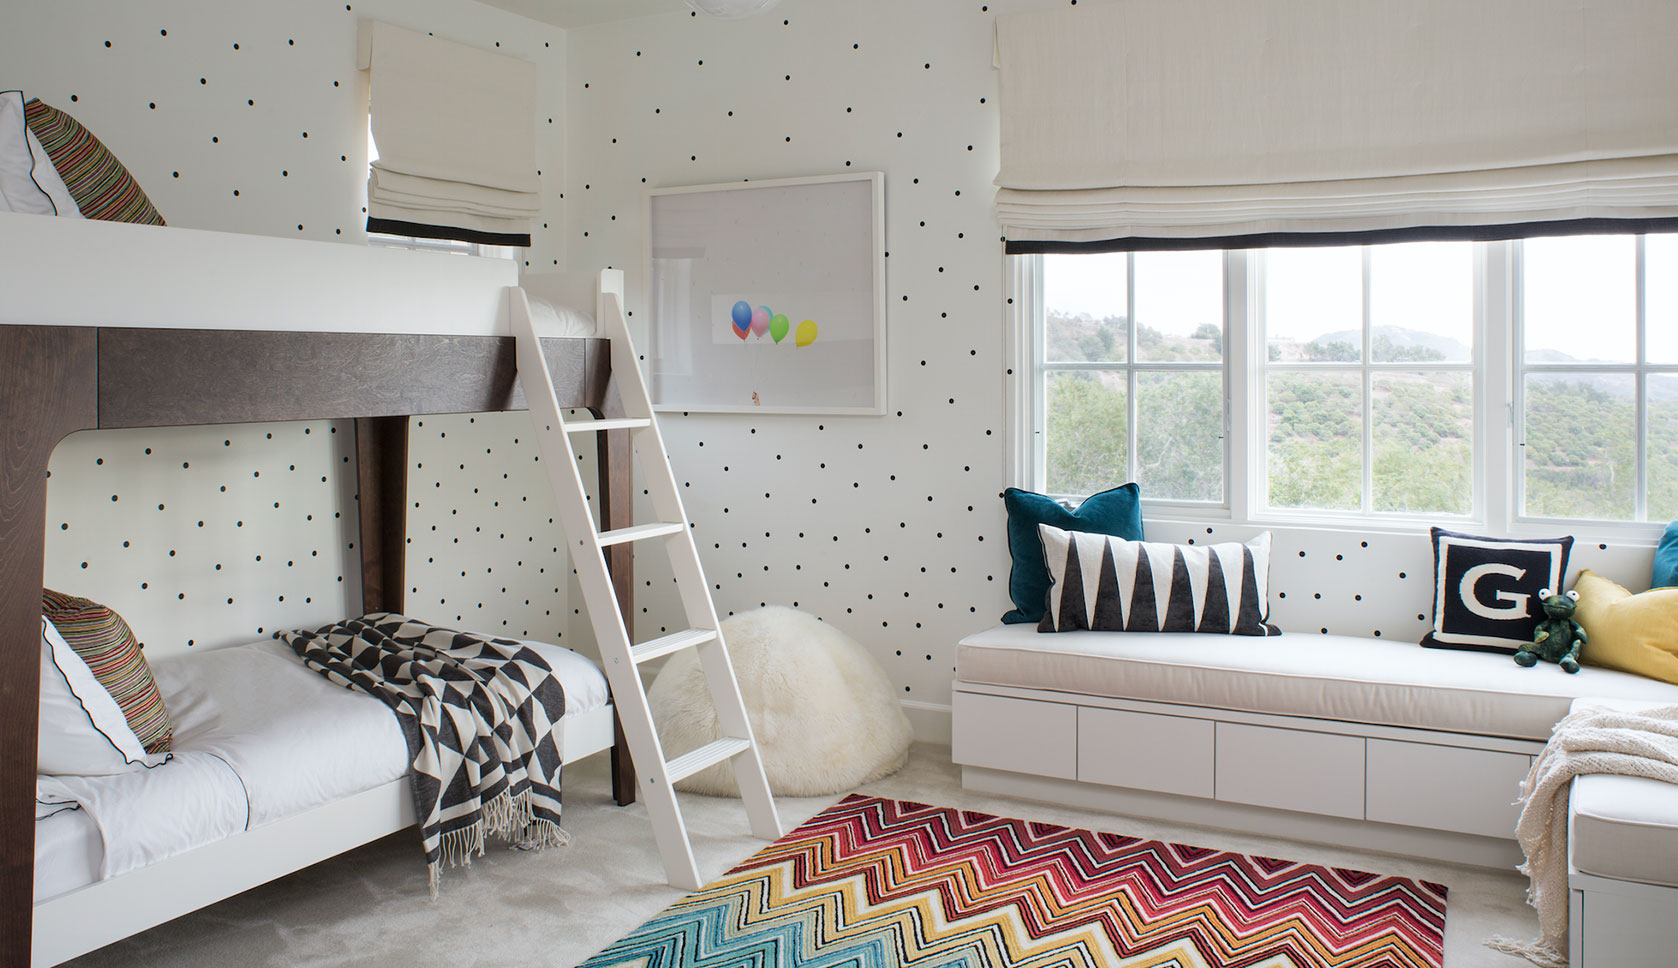 Rooms: How To: Great Guest Room Design